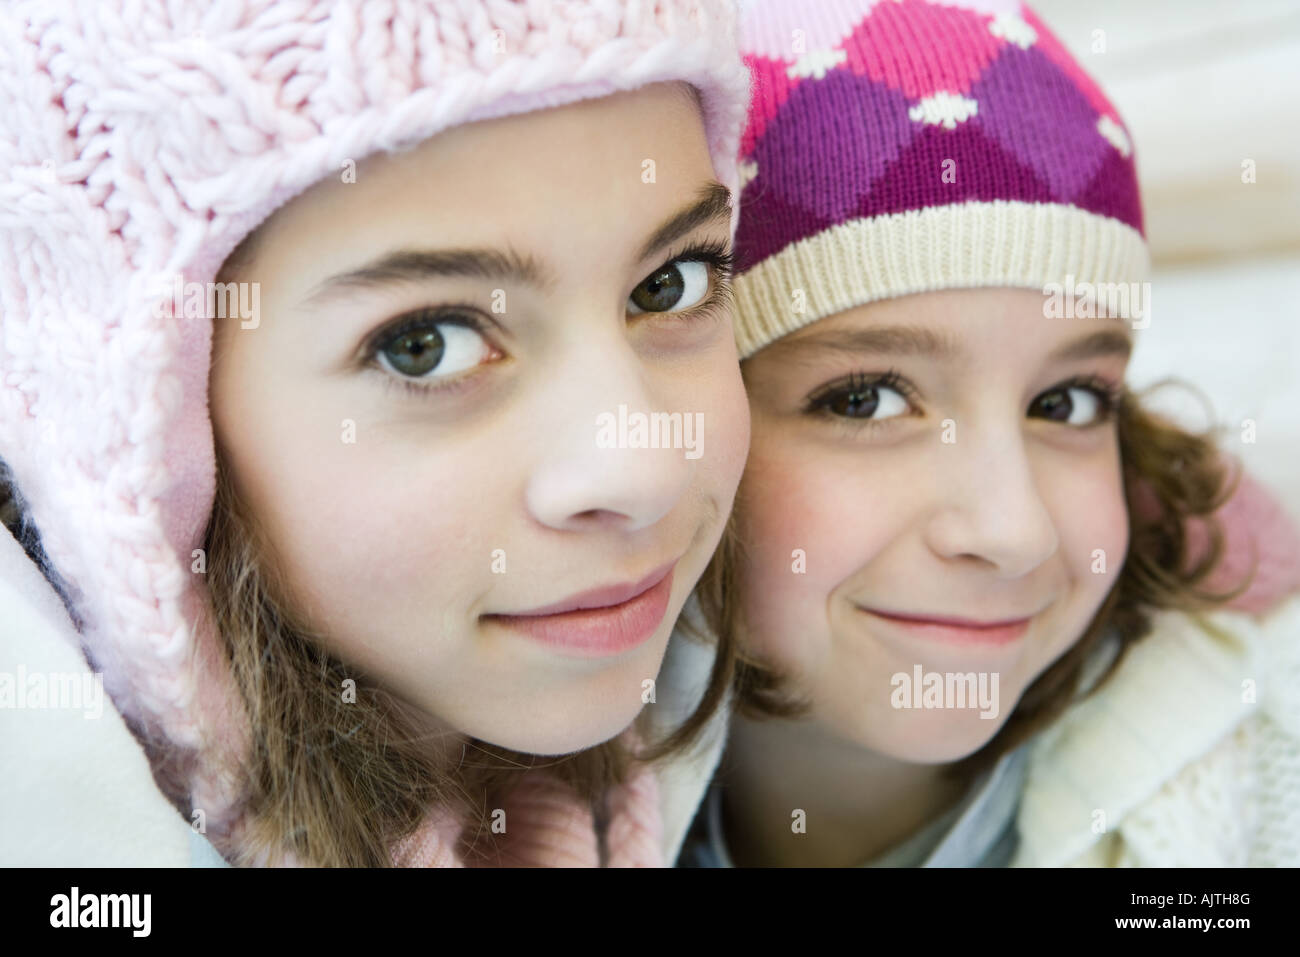 Two young sisters smiling at camera, both wearing knit hats, cheek to cheek, portrait - Stock Image